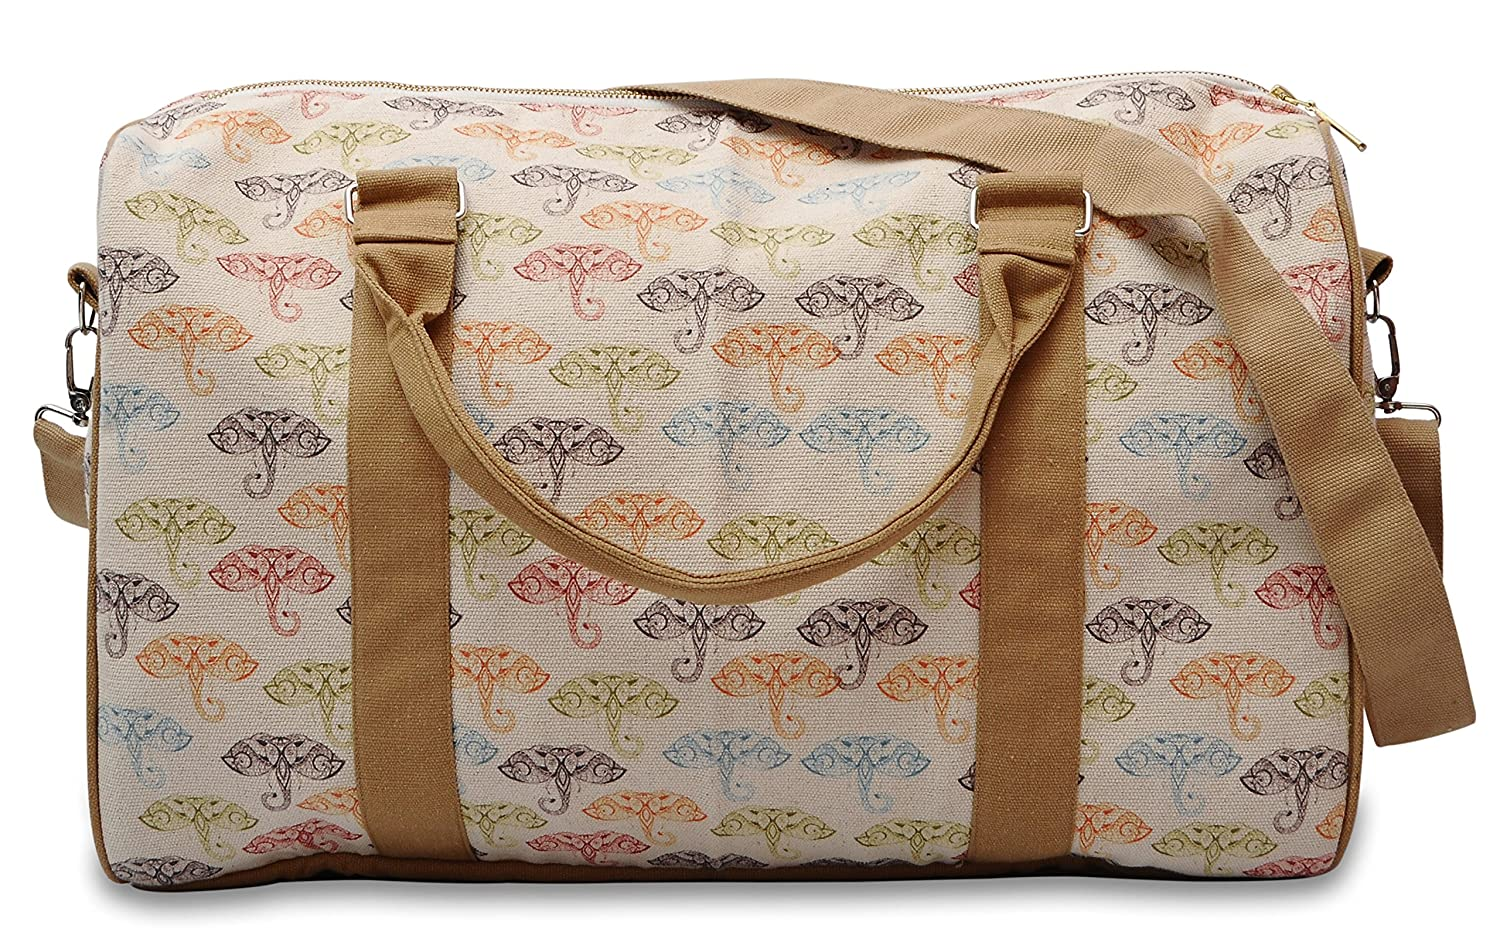 Elephant Abstract Printed Canvas Duffle Luggage Travel Bag WAS/_42